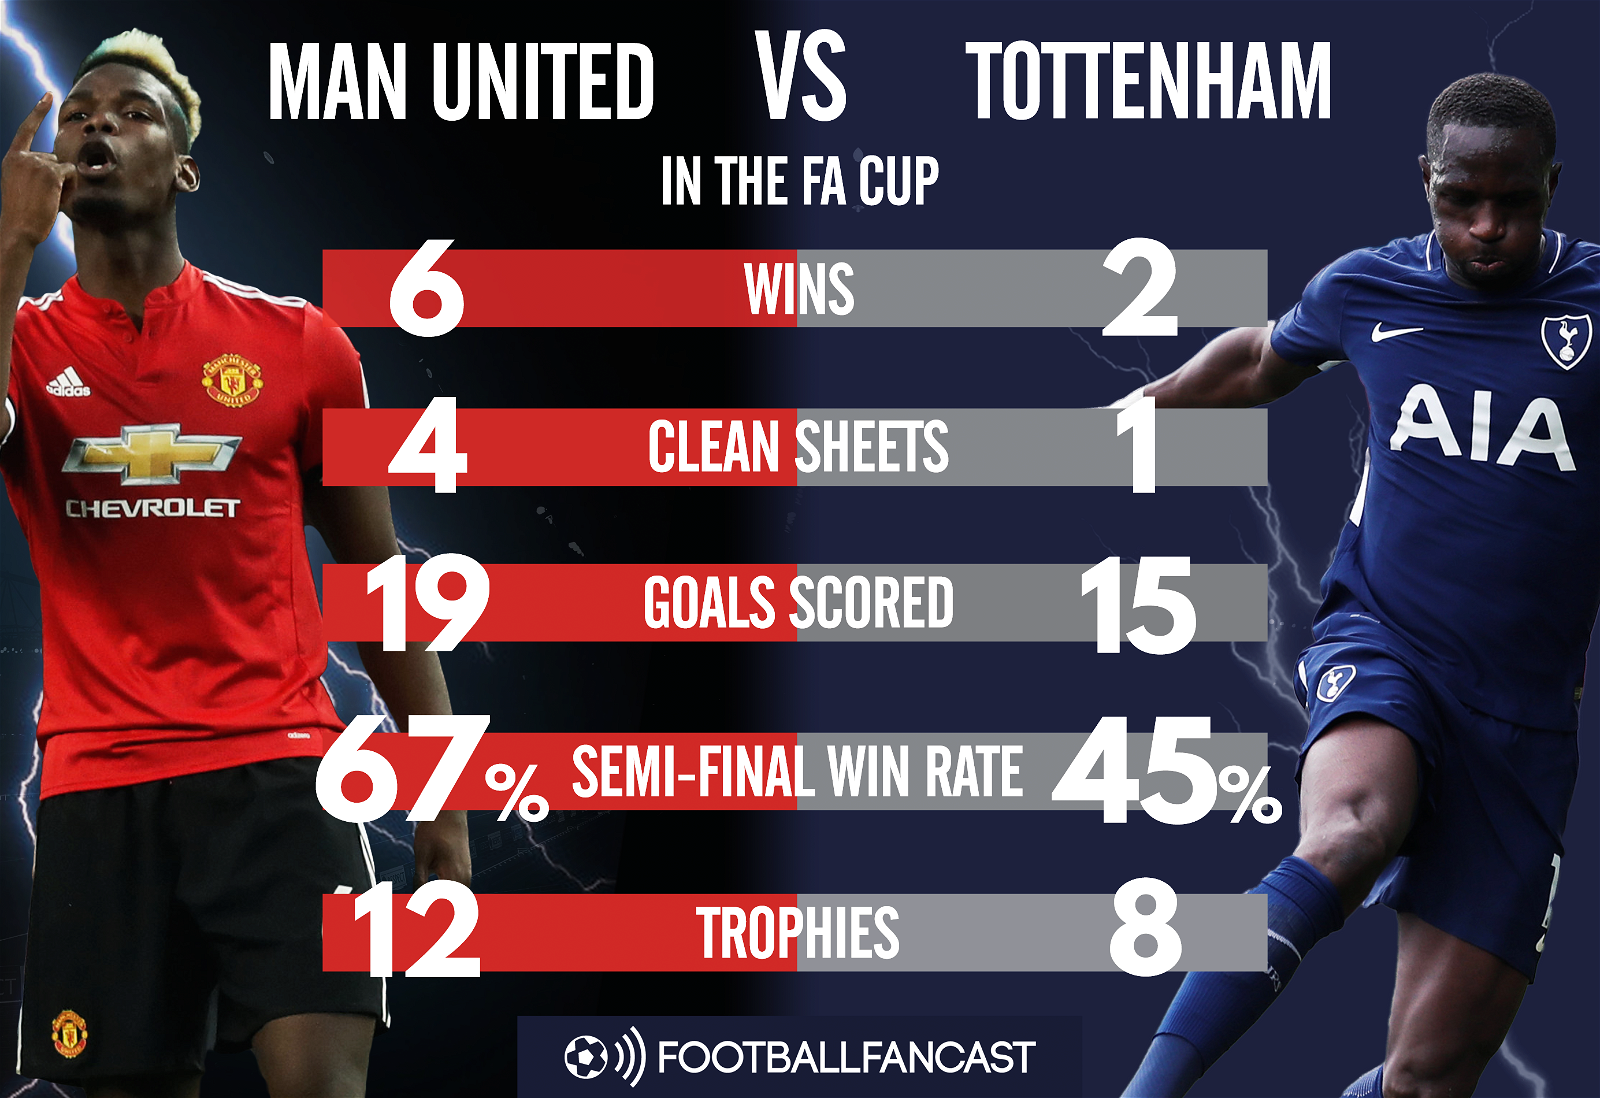 Head to Head - Man United vs Spurs in FA Cup